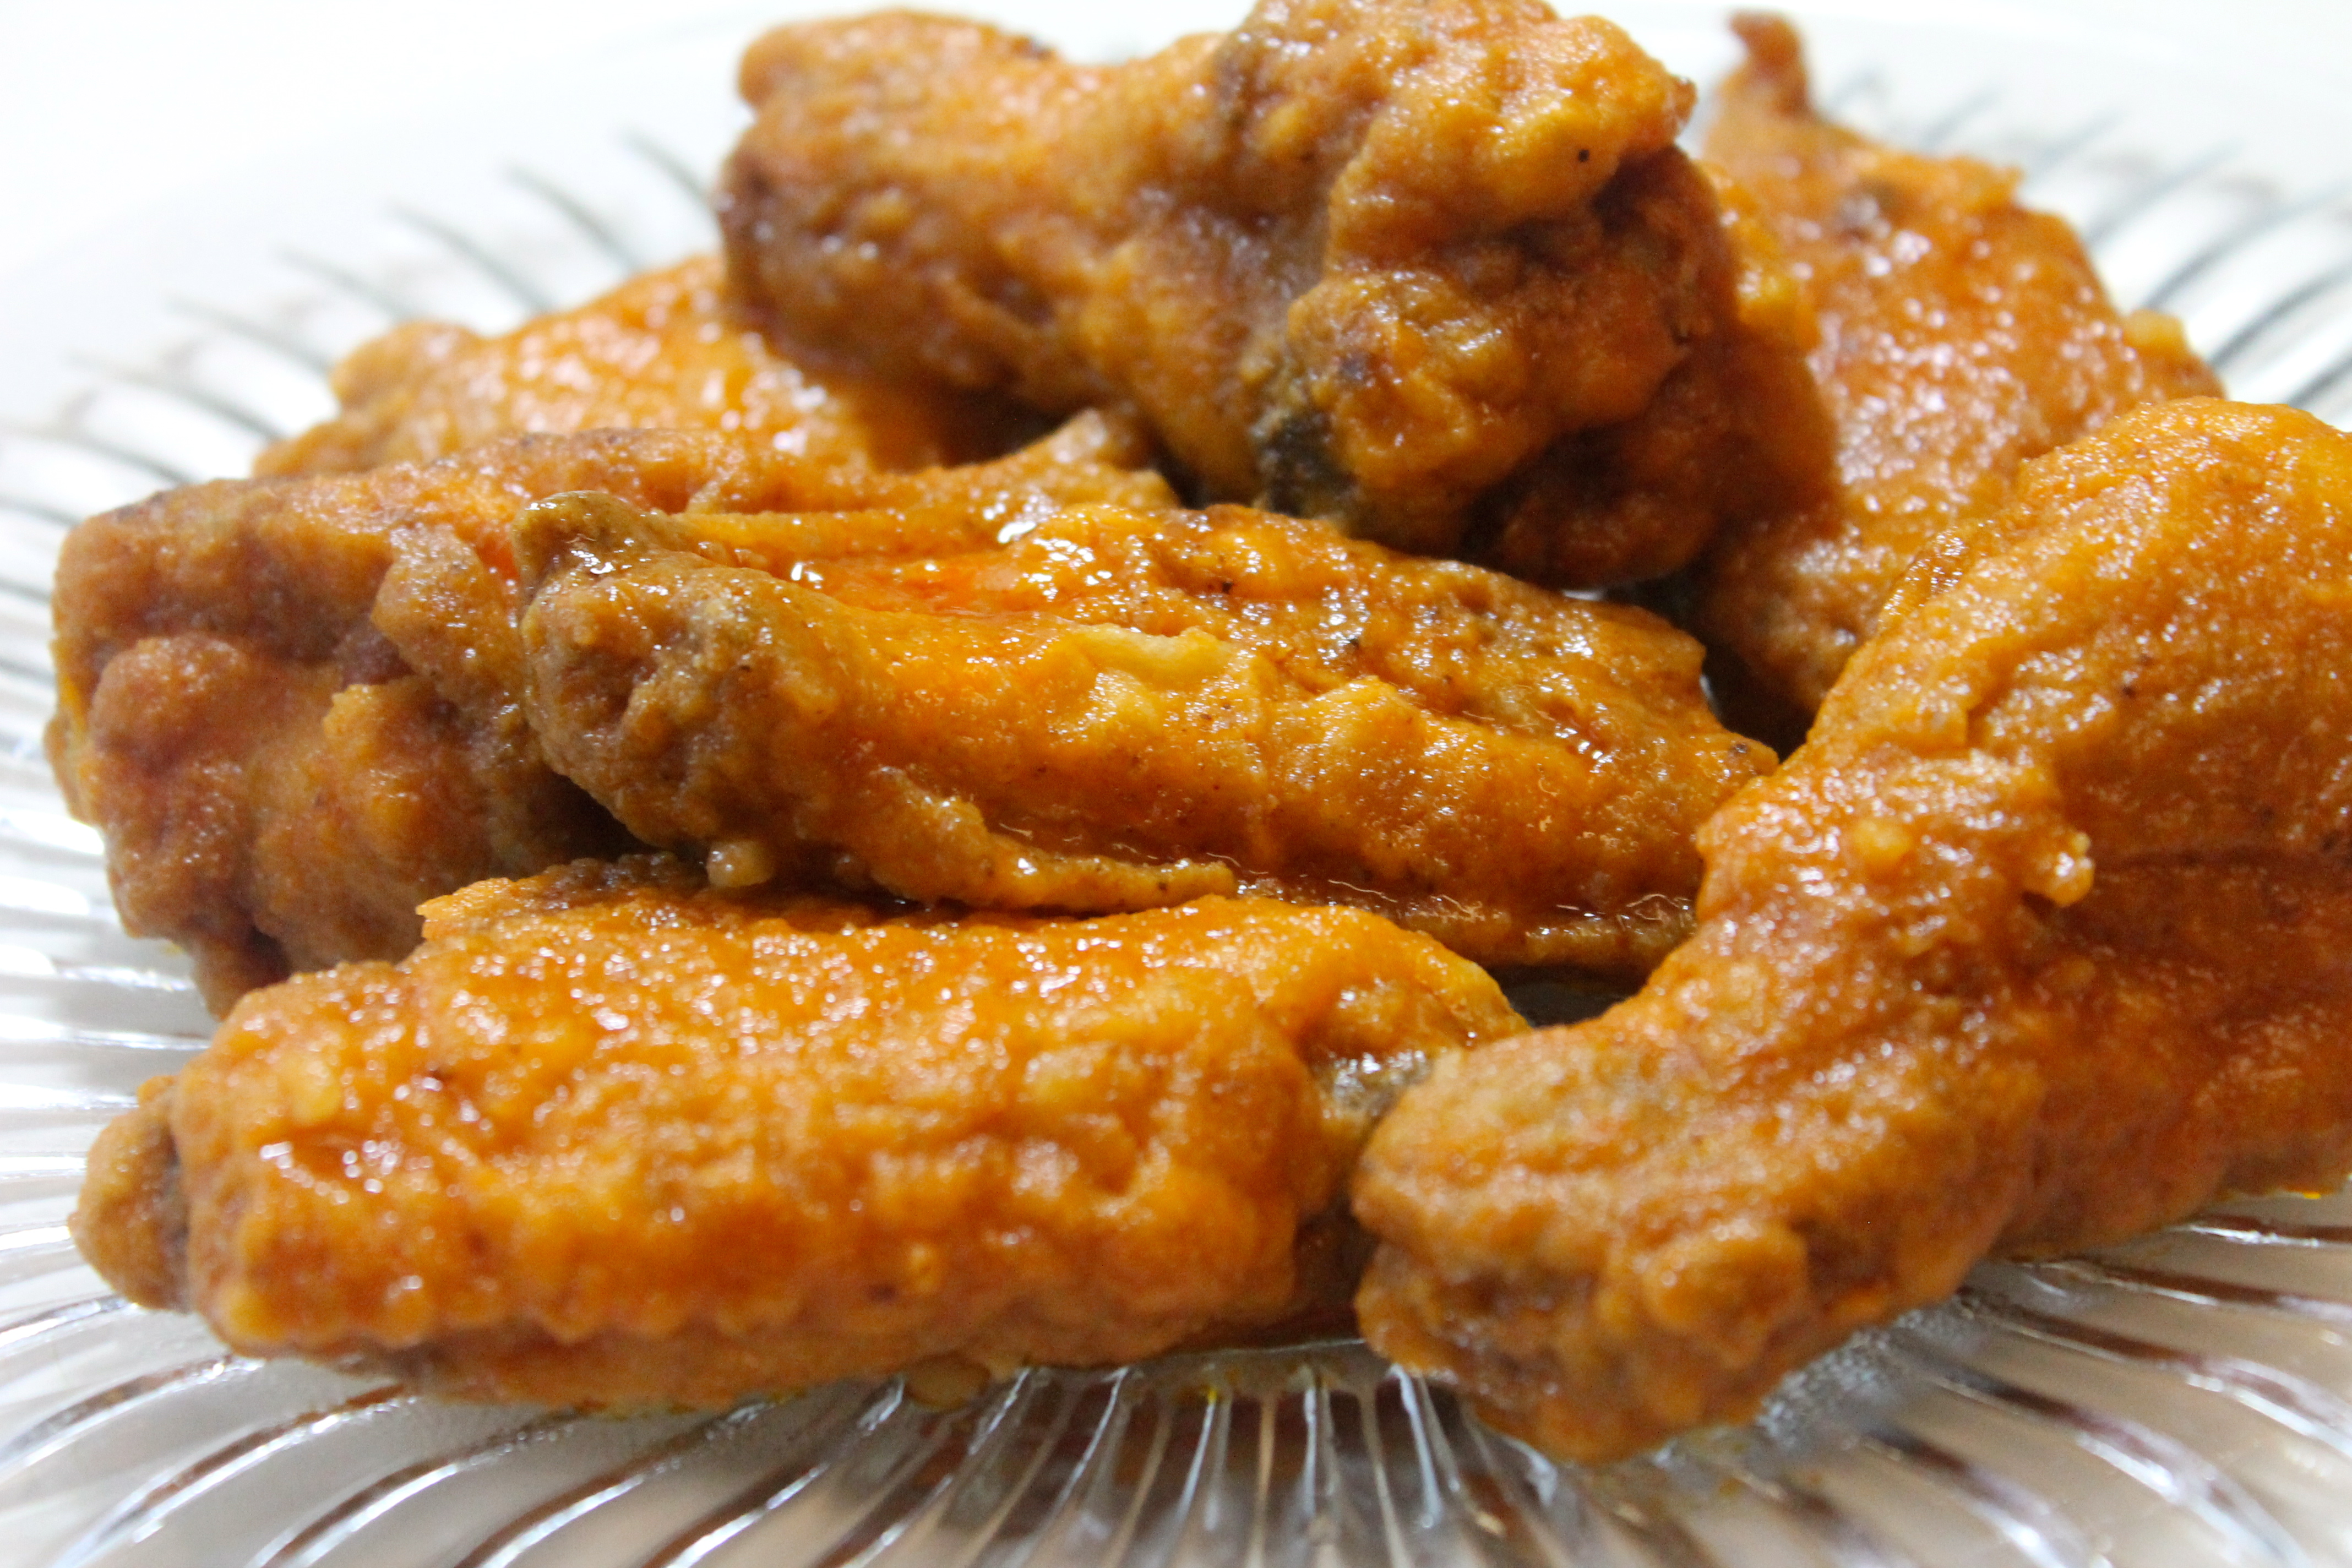 Hot wings recipe i heart recipes restaurant quality hot wings for the fraction on the price forumfinder Choice Image